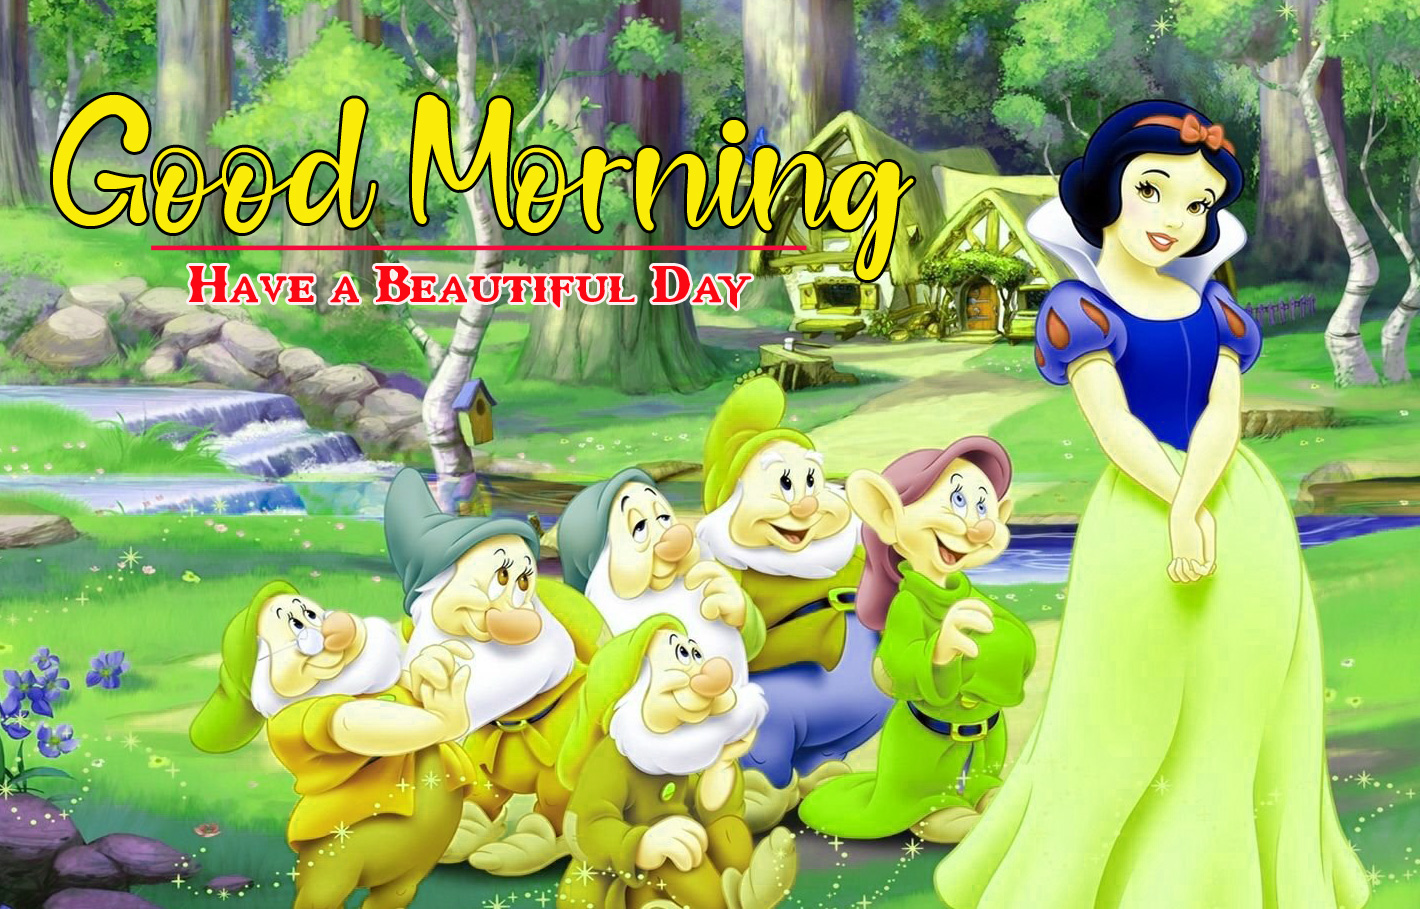 Cartoon Good Morning Images Pics Free Download for Whatsapp